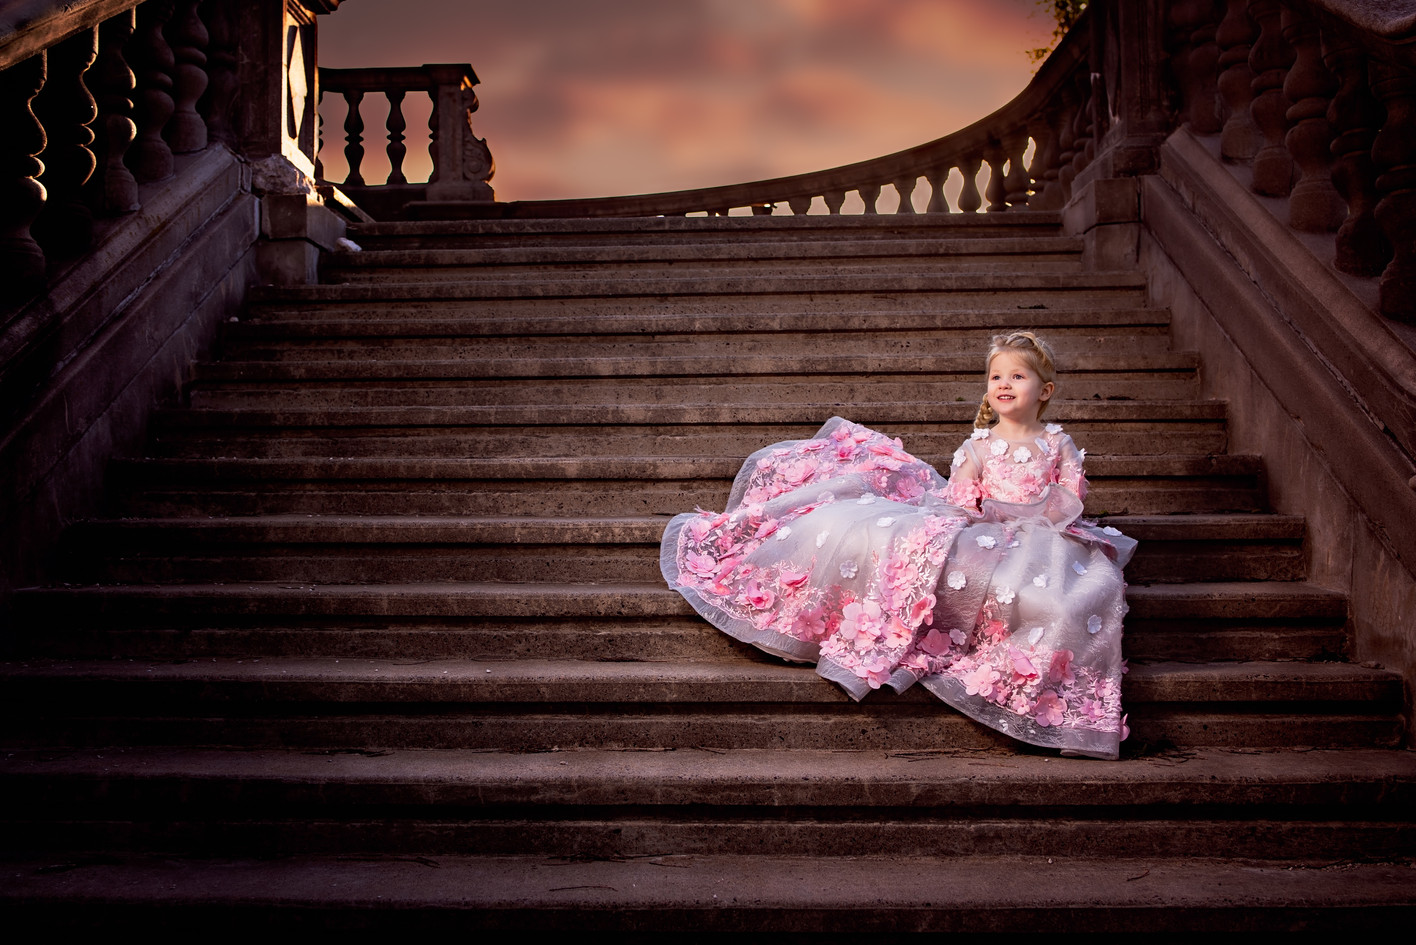 Epic princess photography at a castle